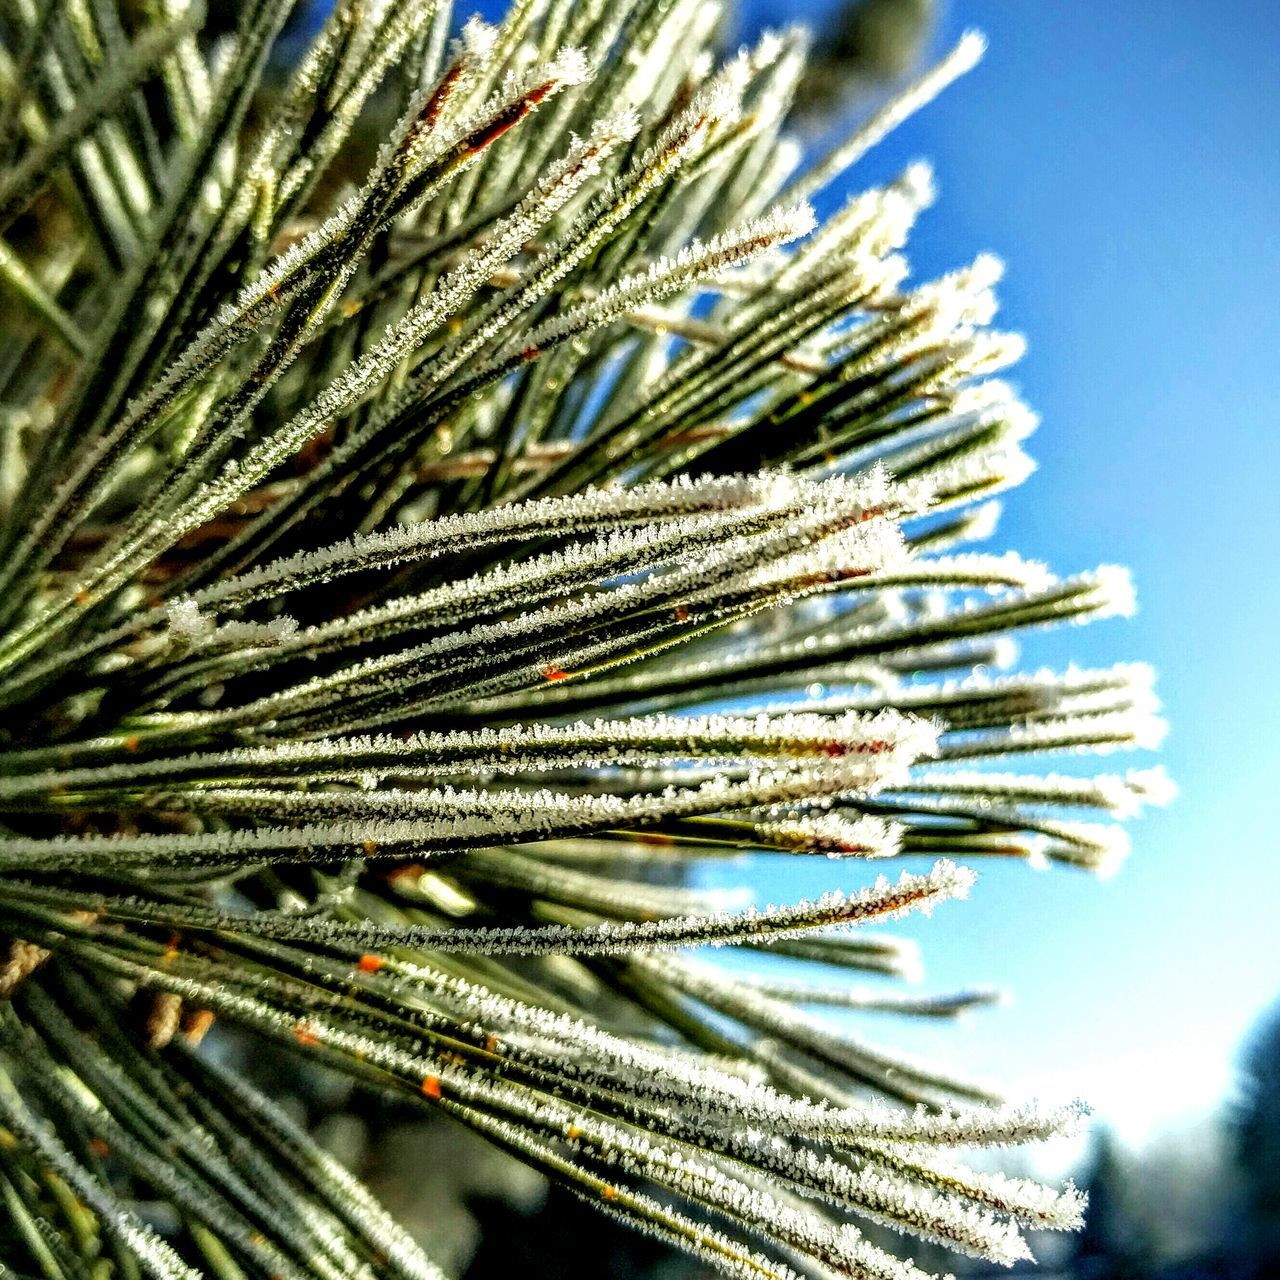 nature, pine tree, focus on foreground, no people, needle, day, beauty in nature, growth, close-up, outdoors, tree